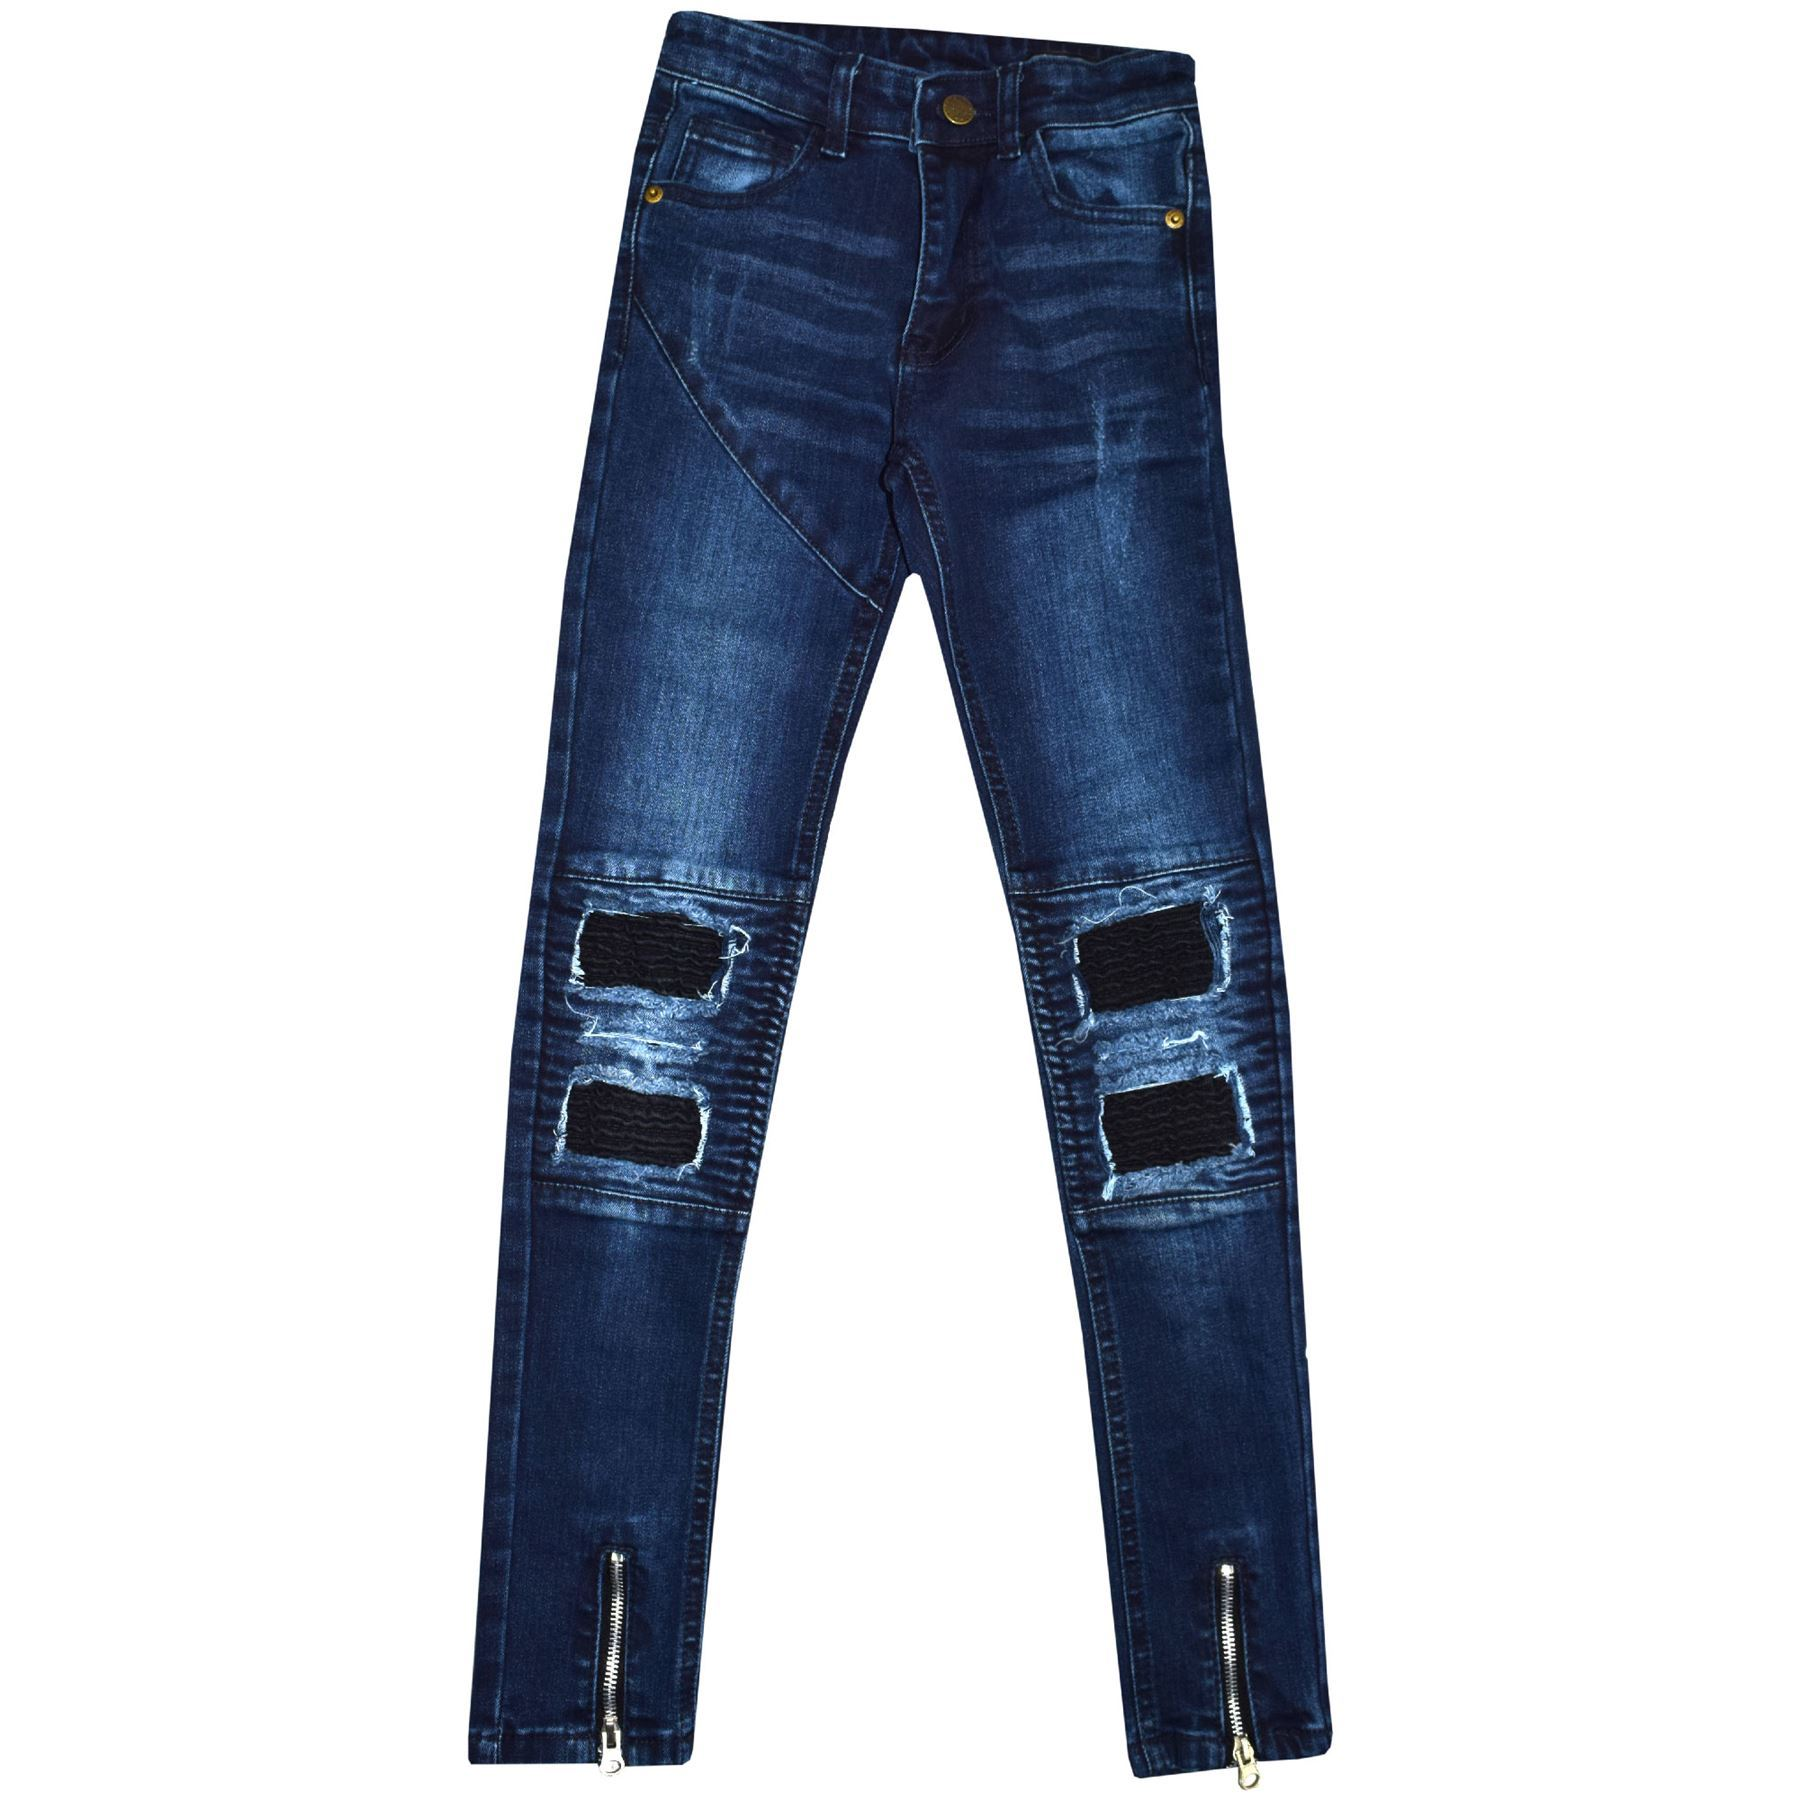 95a6c48759c2 Kids Boys Stretchy Jeans Dark Blue Ripped Denim Skinny Pants ...